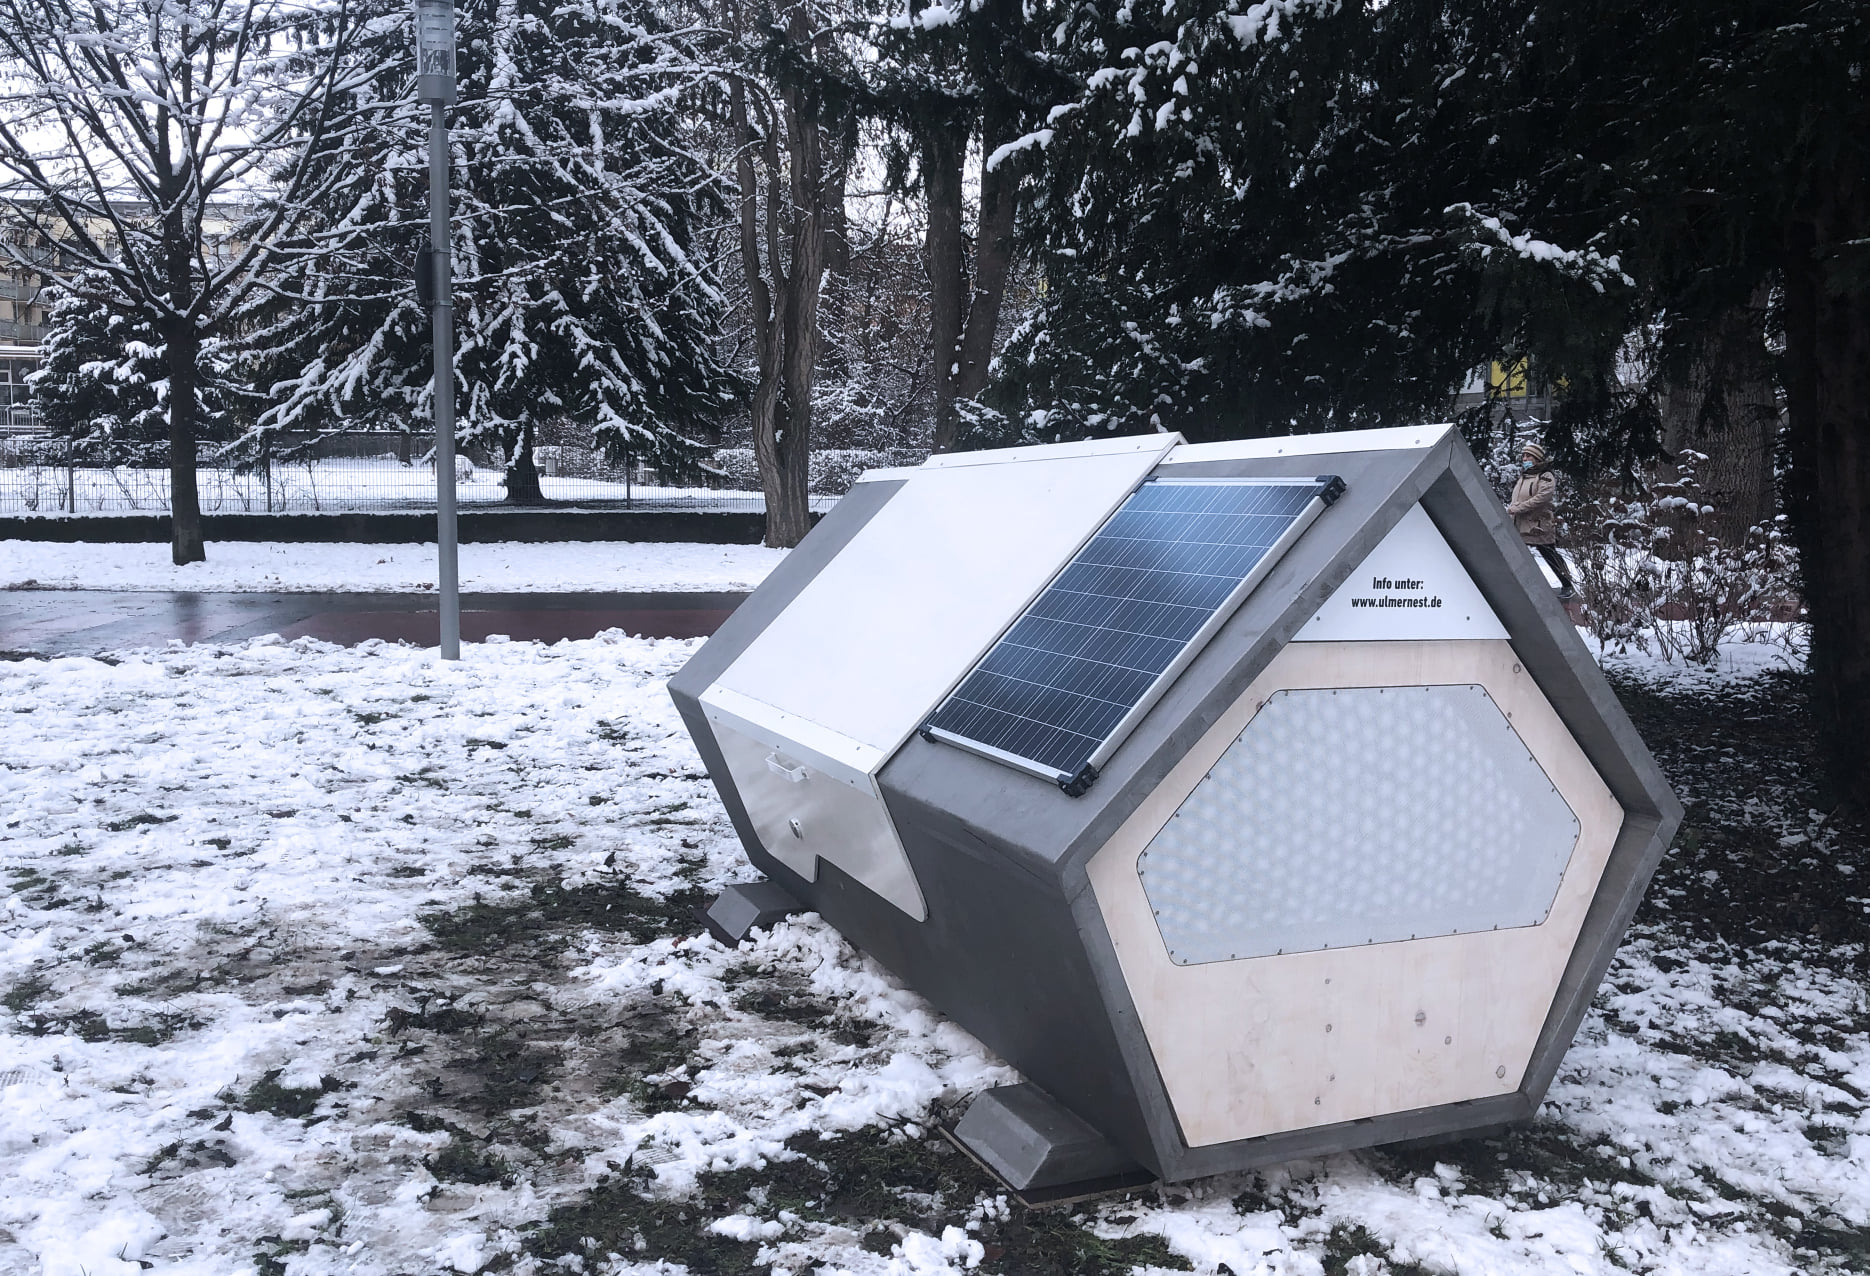 GERMAN CITY INSTALLS THERMALLY INSULATED SLEEPING PODS FOR THE HOMELESS PhpNTygYR